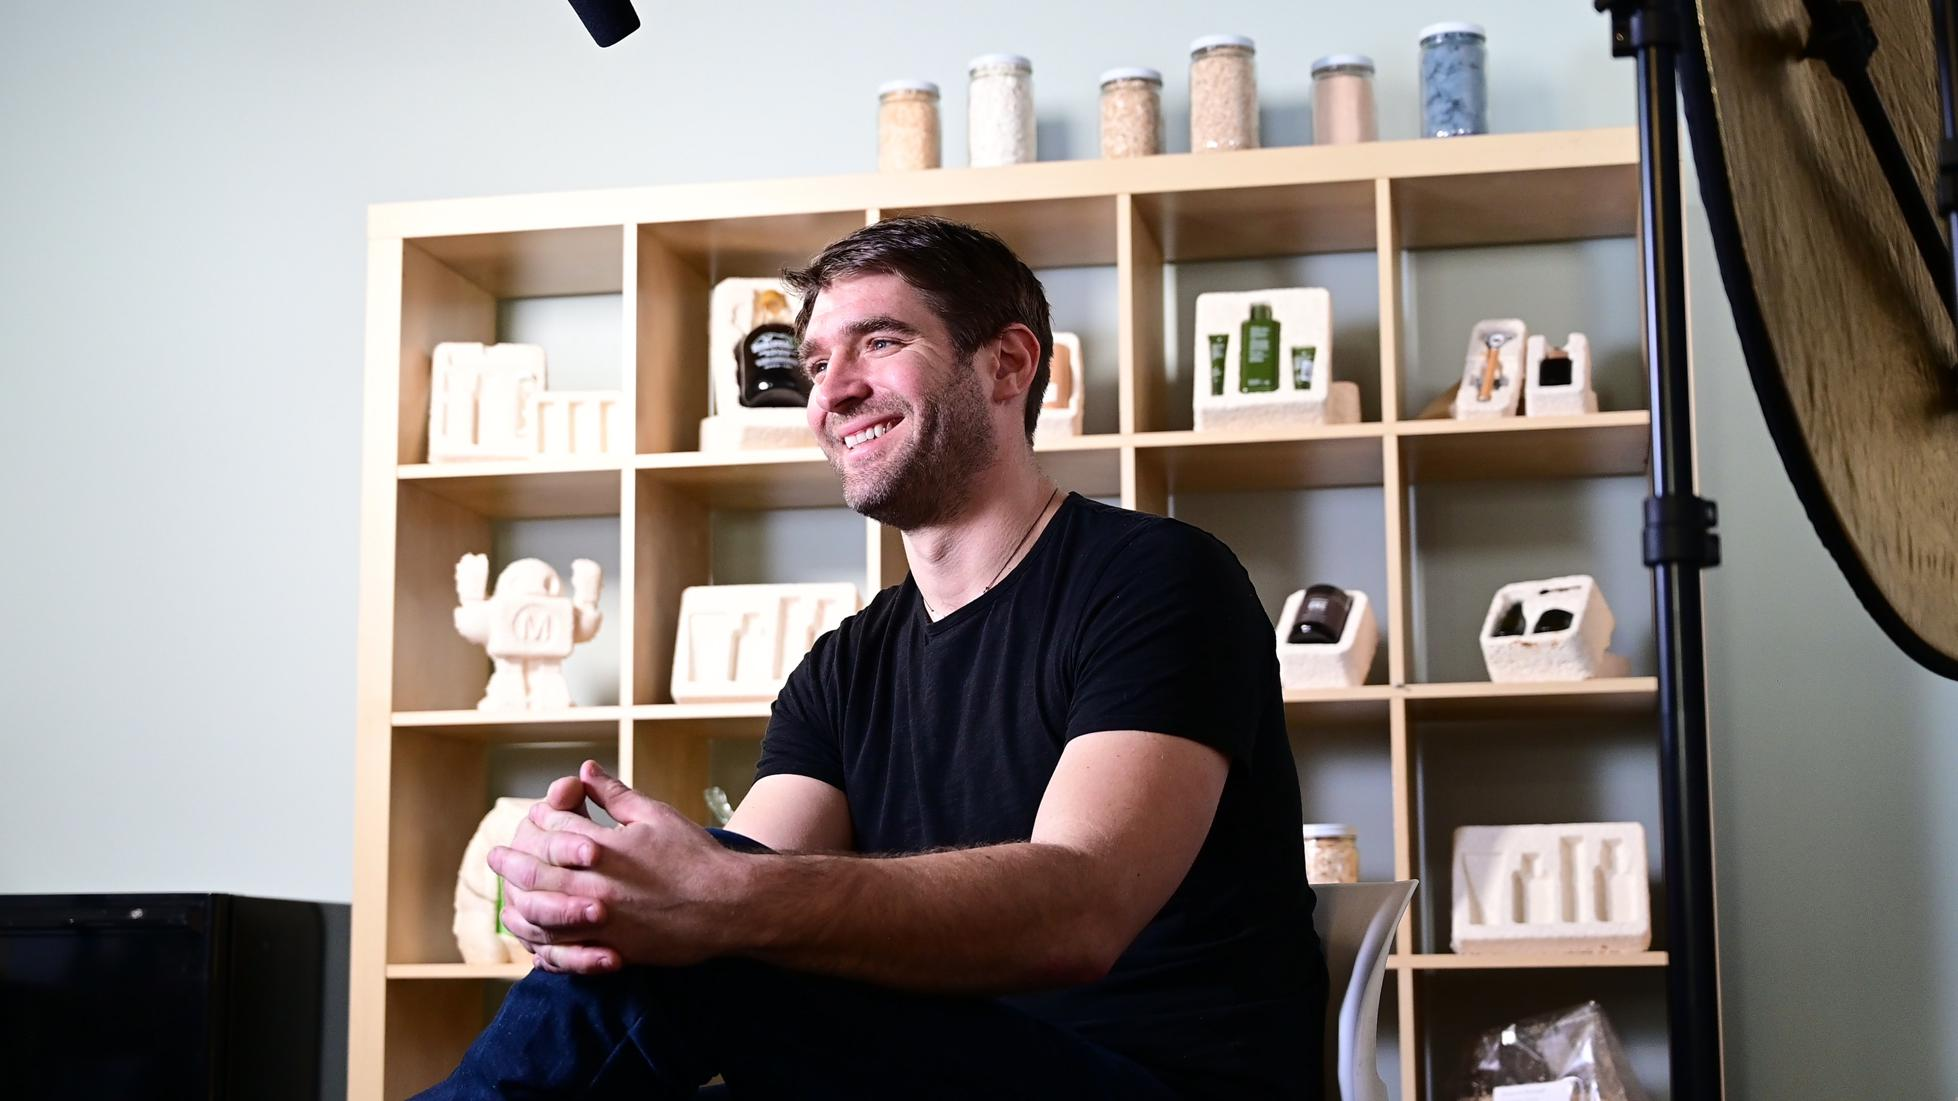 Eben Bayer cofounded Atlast, a food-focused spinoff from Bayer's mycelium technology company based in upstate New York called Ecovative.